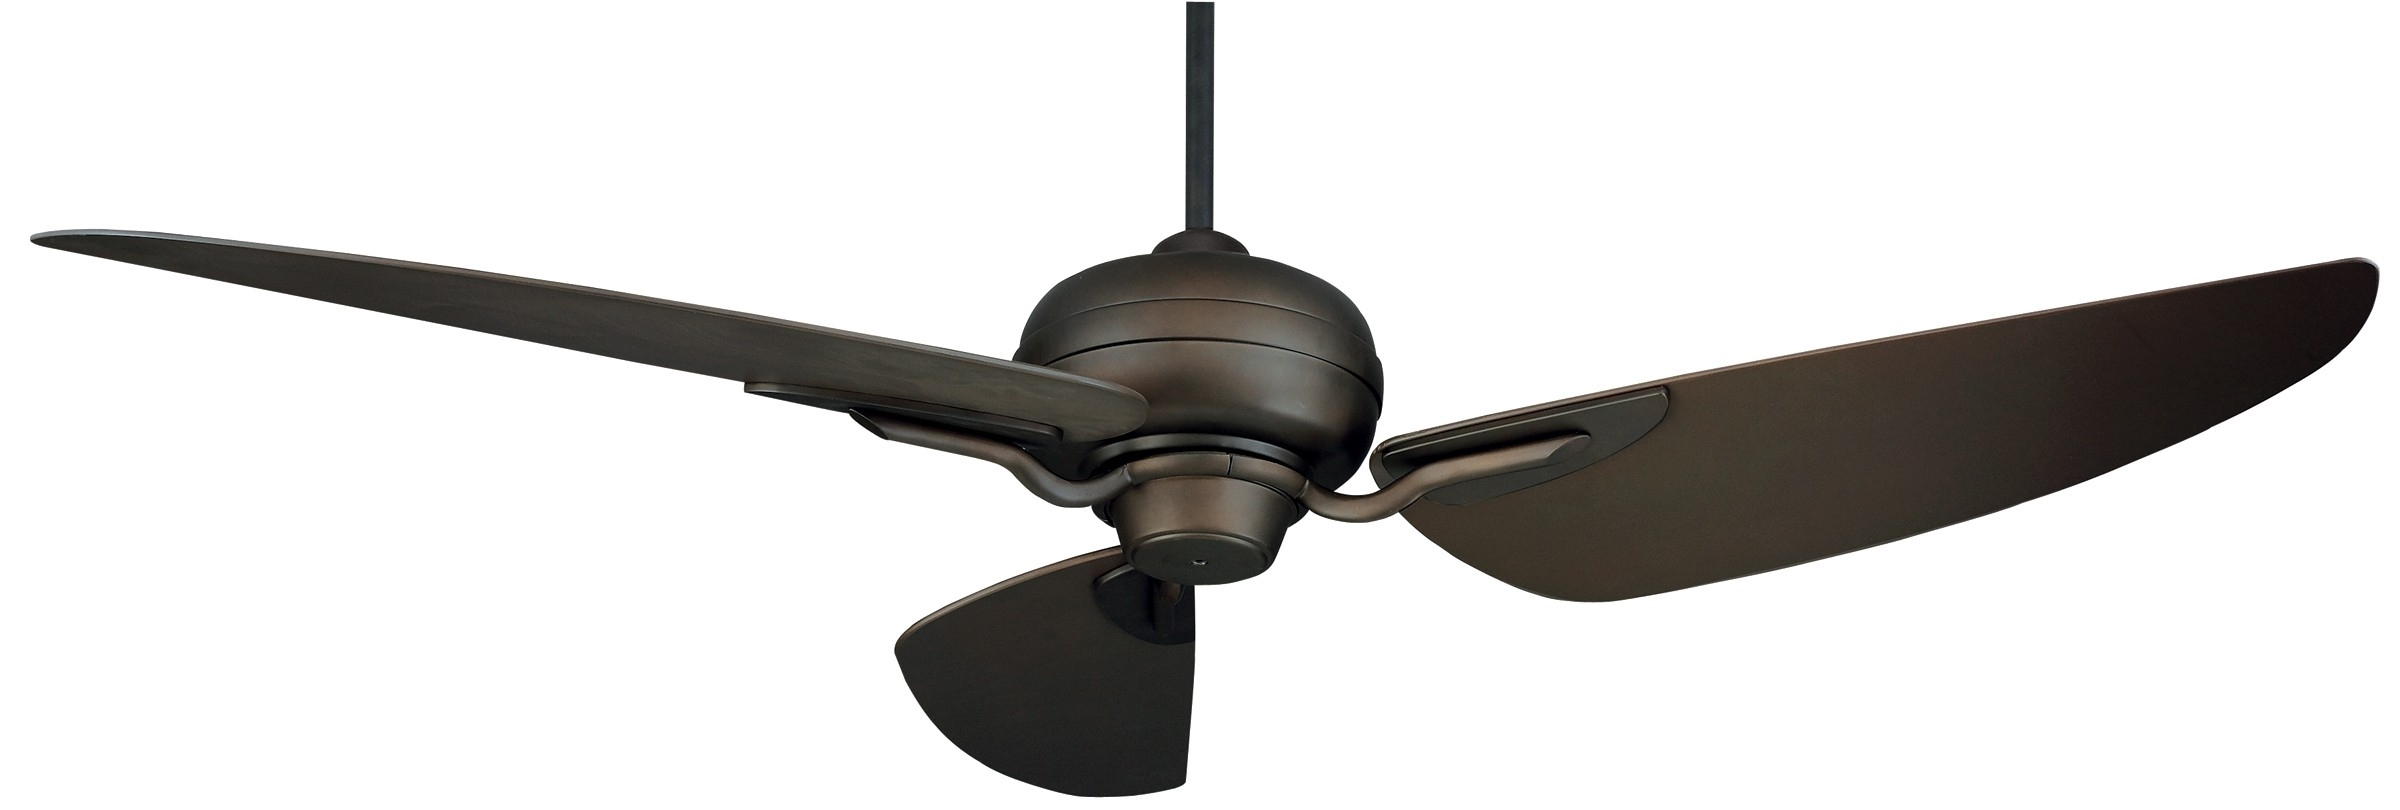 Outdoor Ceiling Fans With Lights Damp Rated • Outdoor Lighting With Regard To Outdoor Ceiling Fans With Damp Rated Lights (#11 of 15)